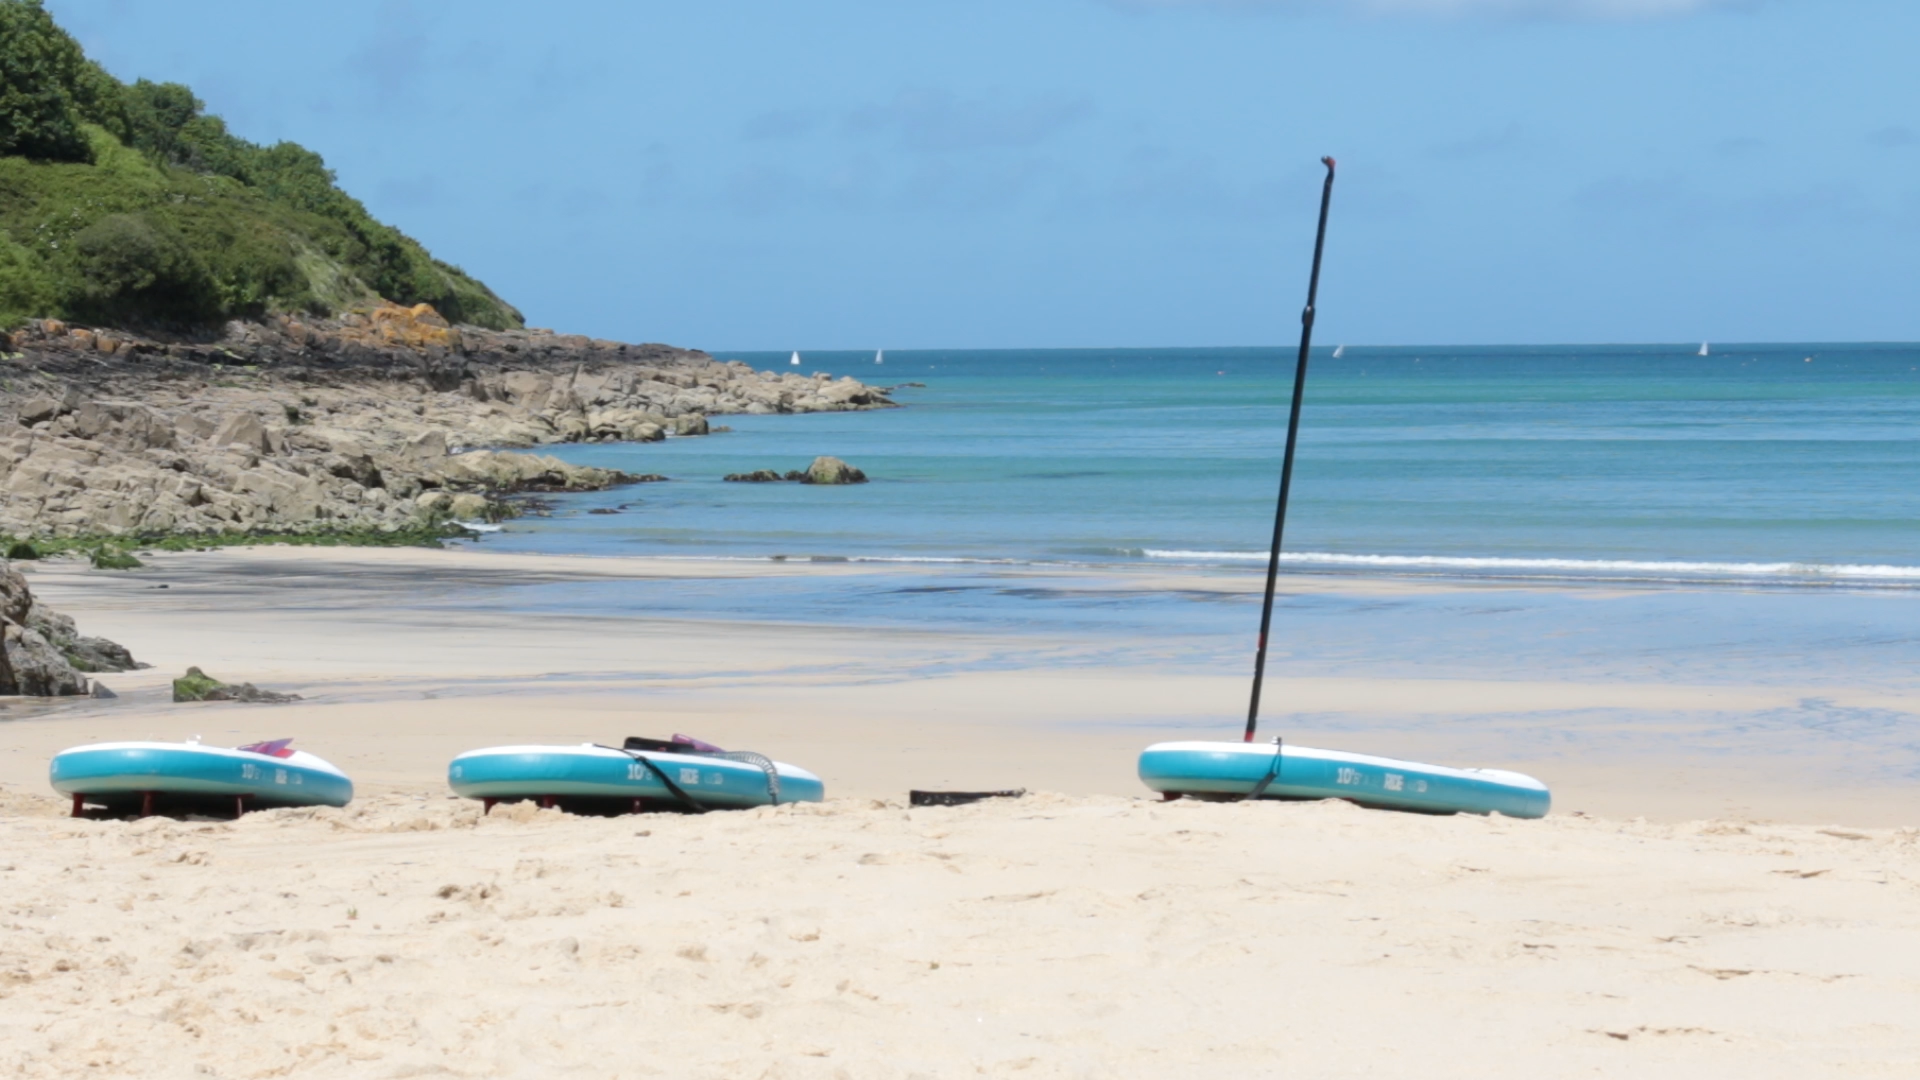 Carbis Bay is the perfect place to take a break before paddleboarding to St Ives.